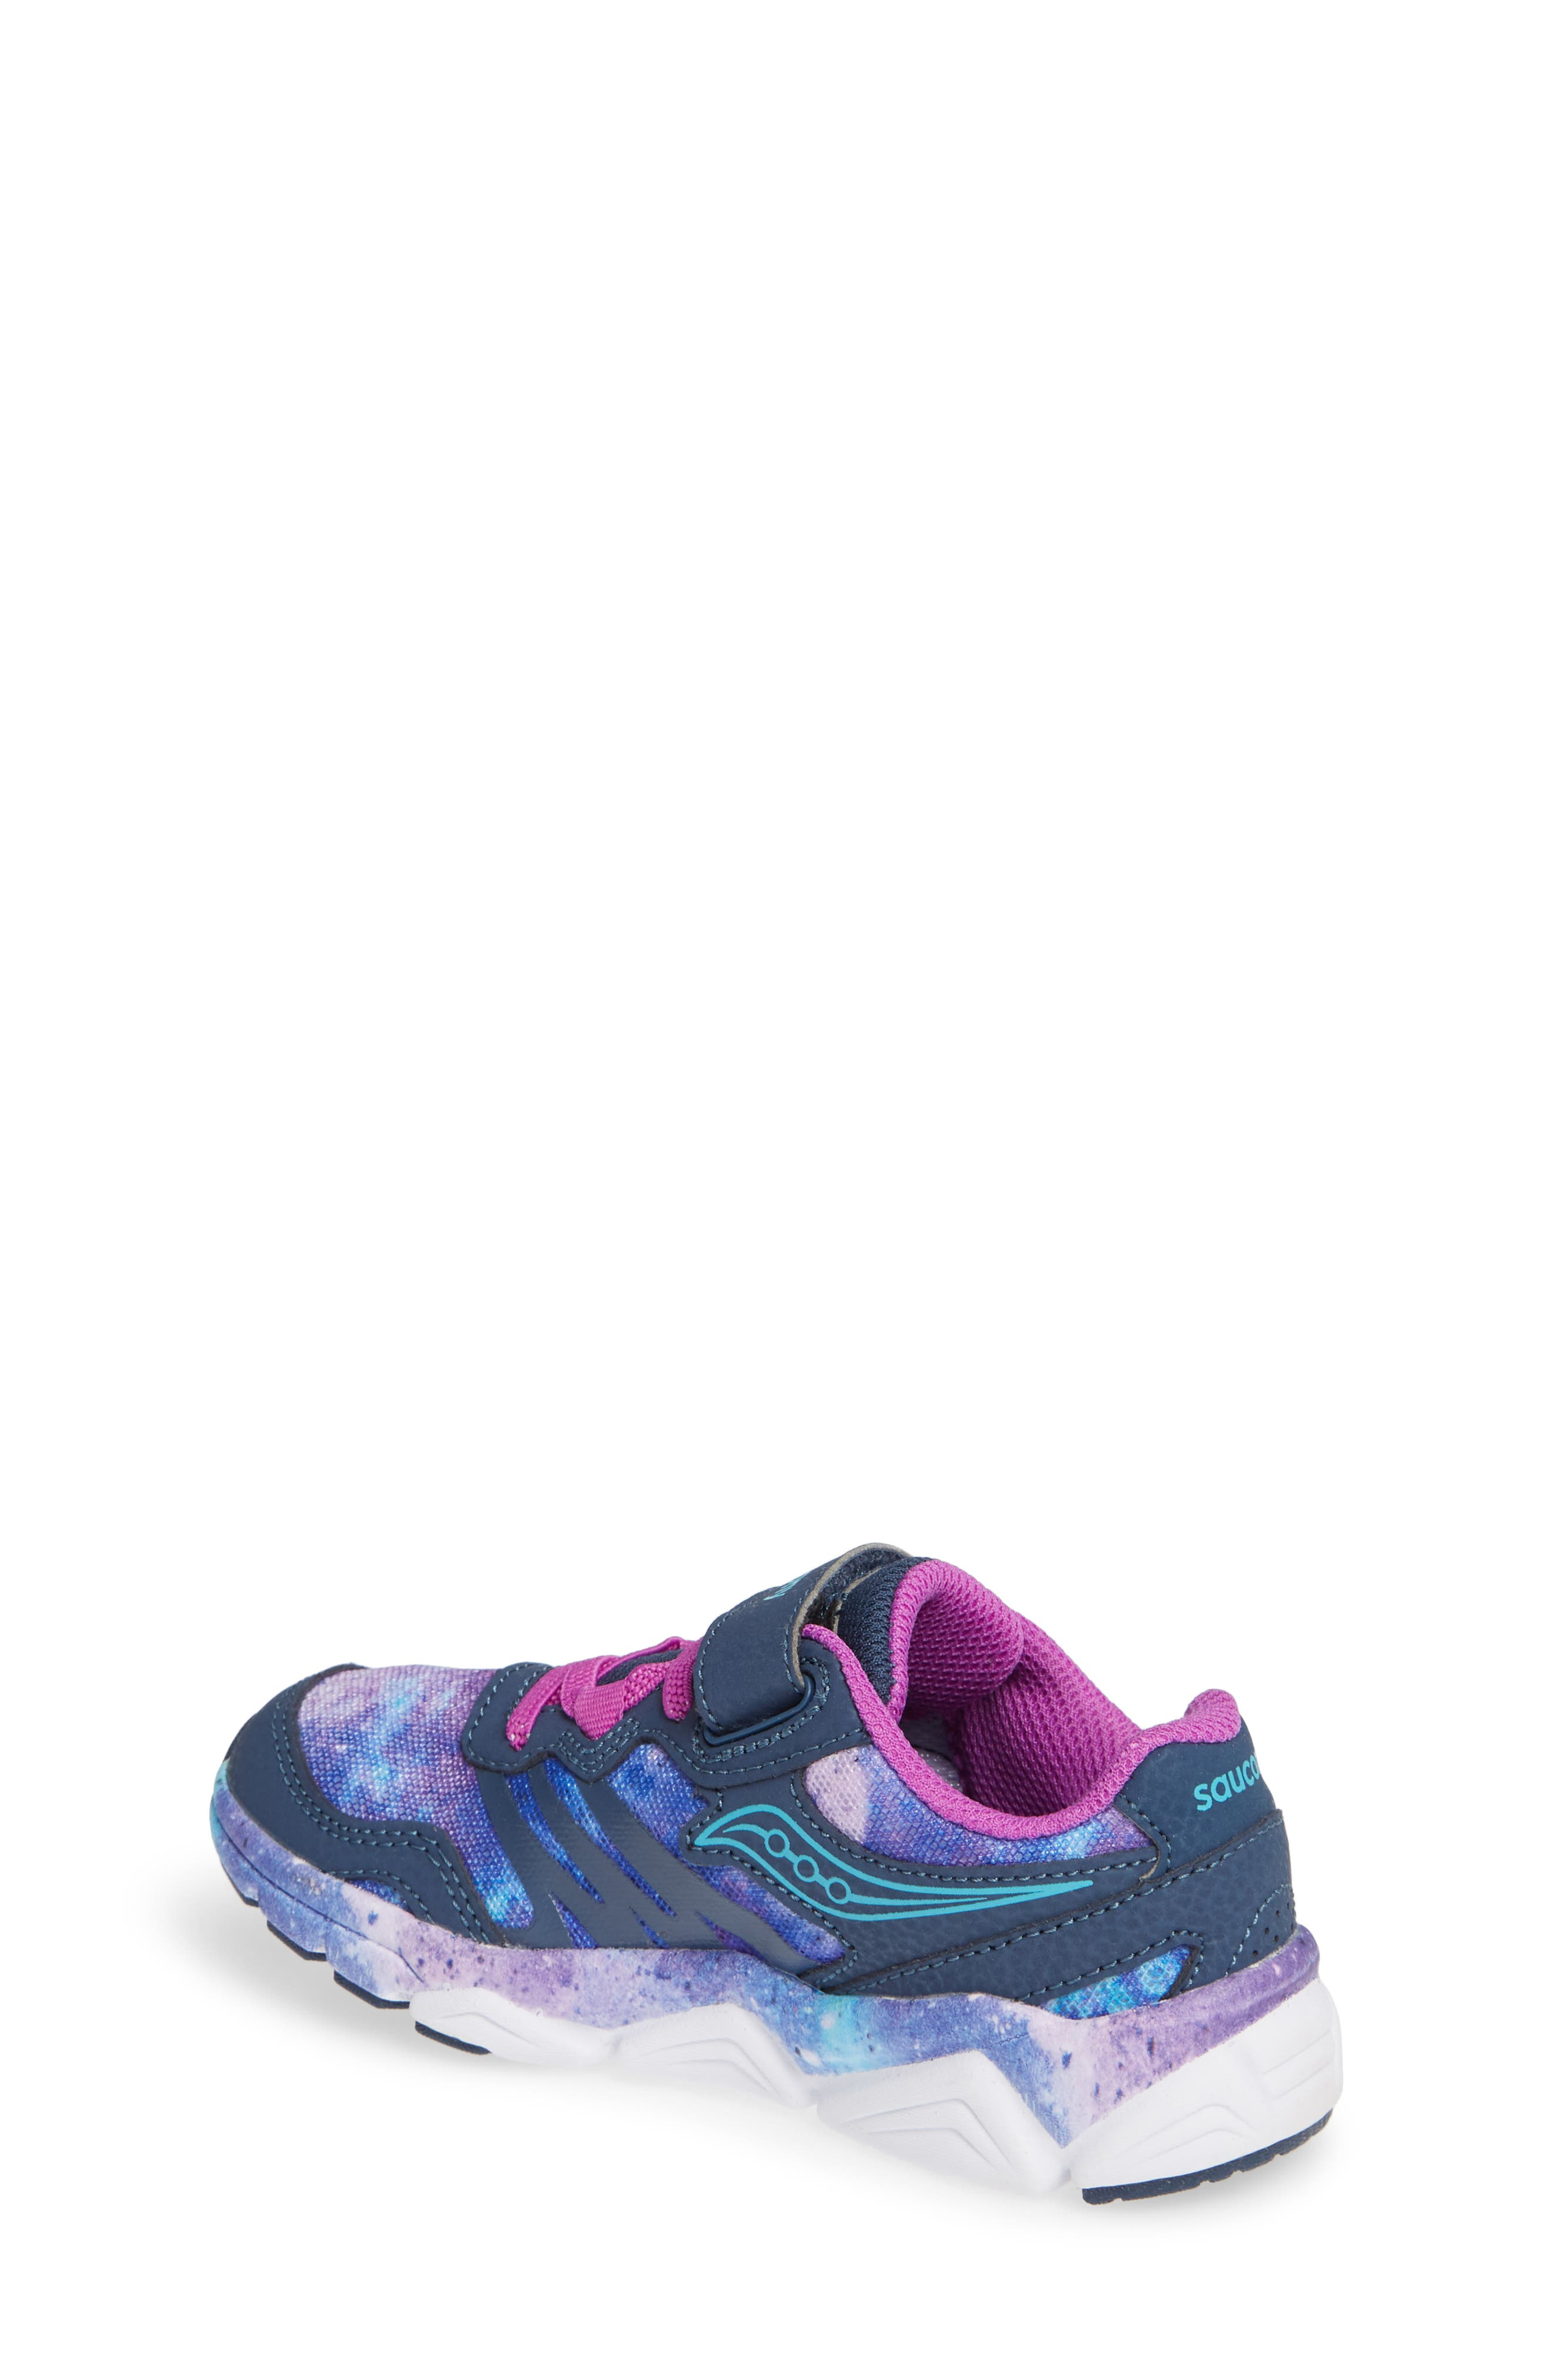 Kotaro Flash Sneaker,                             Alternate thumbnail 2, color,                             PURPLE LEATHER/ MESH